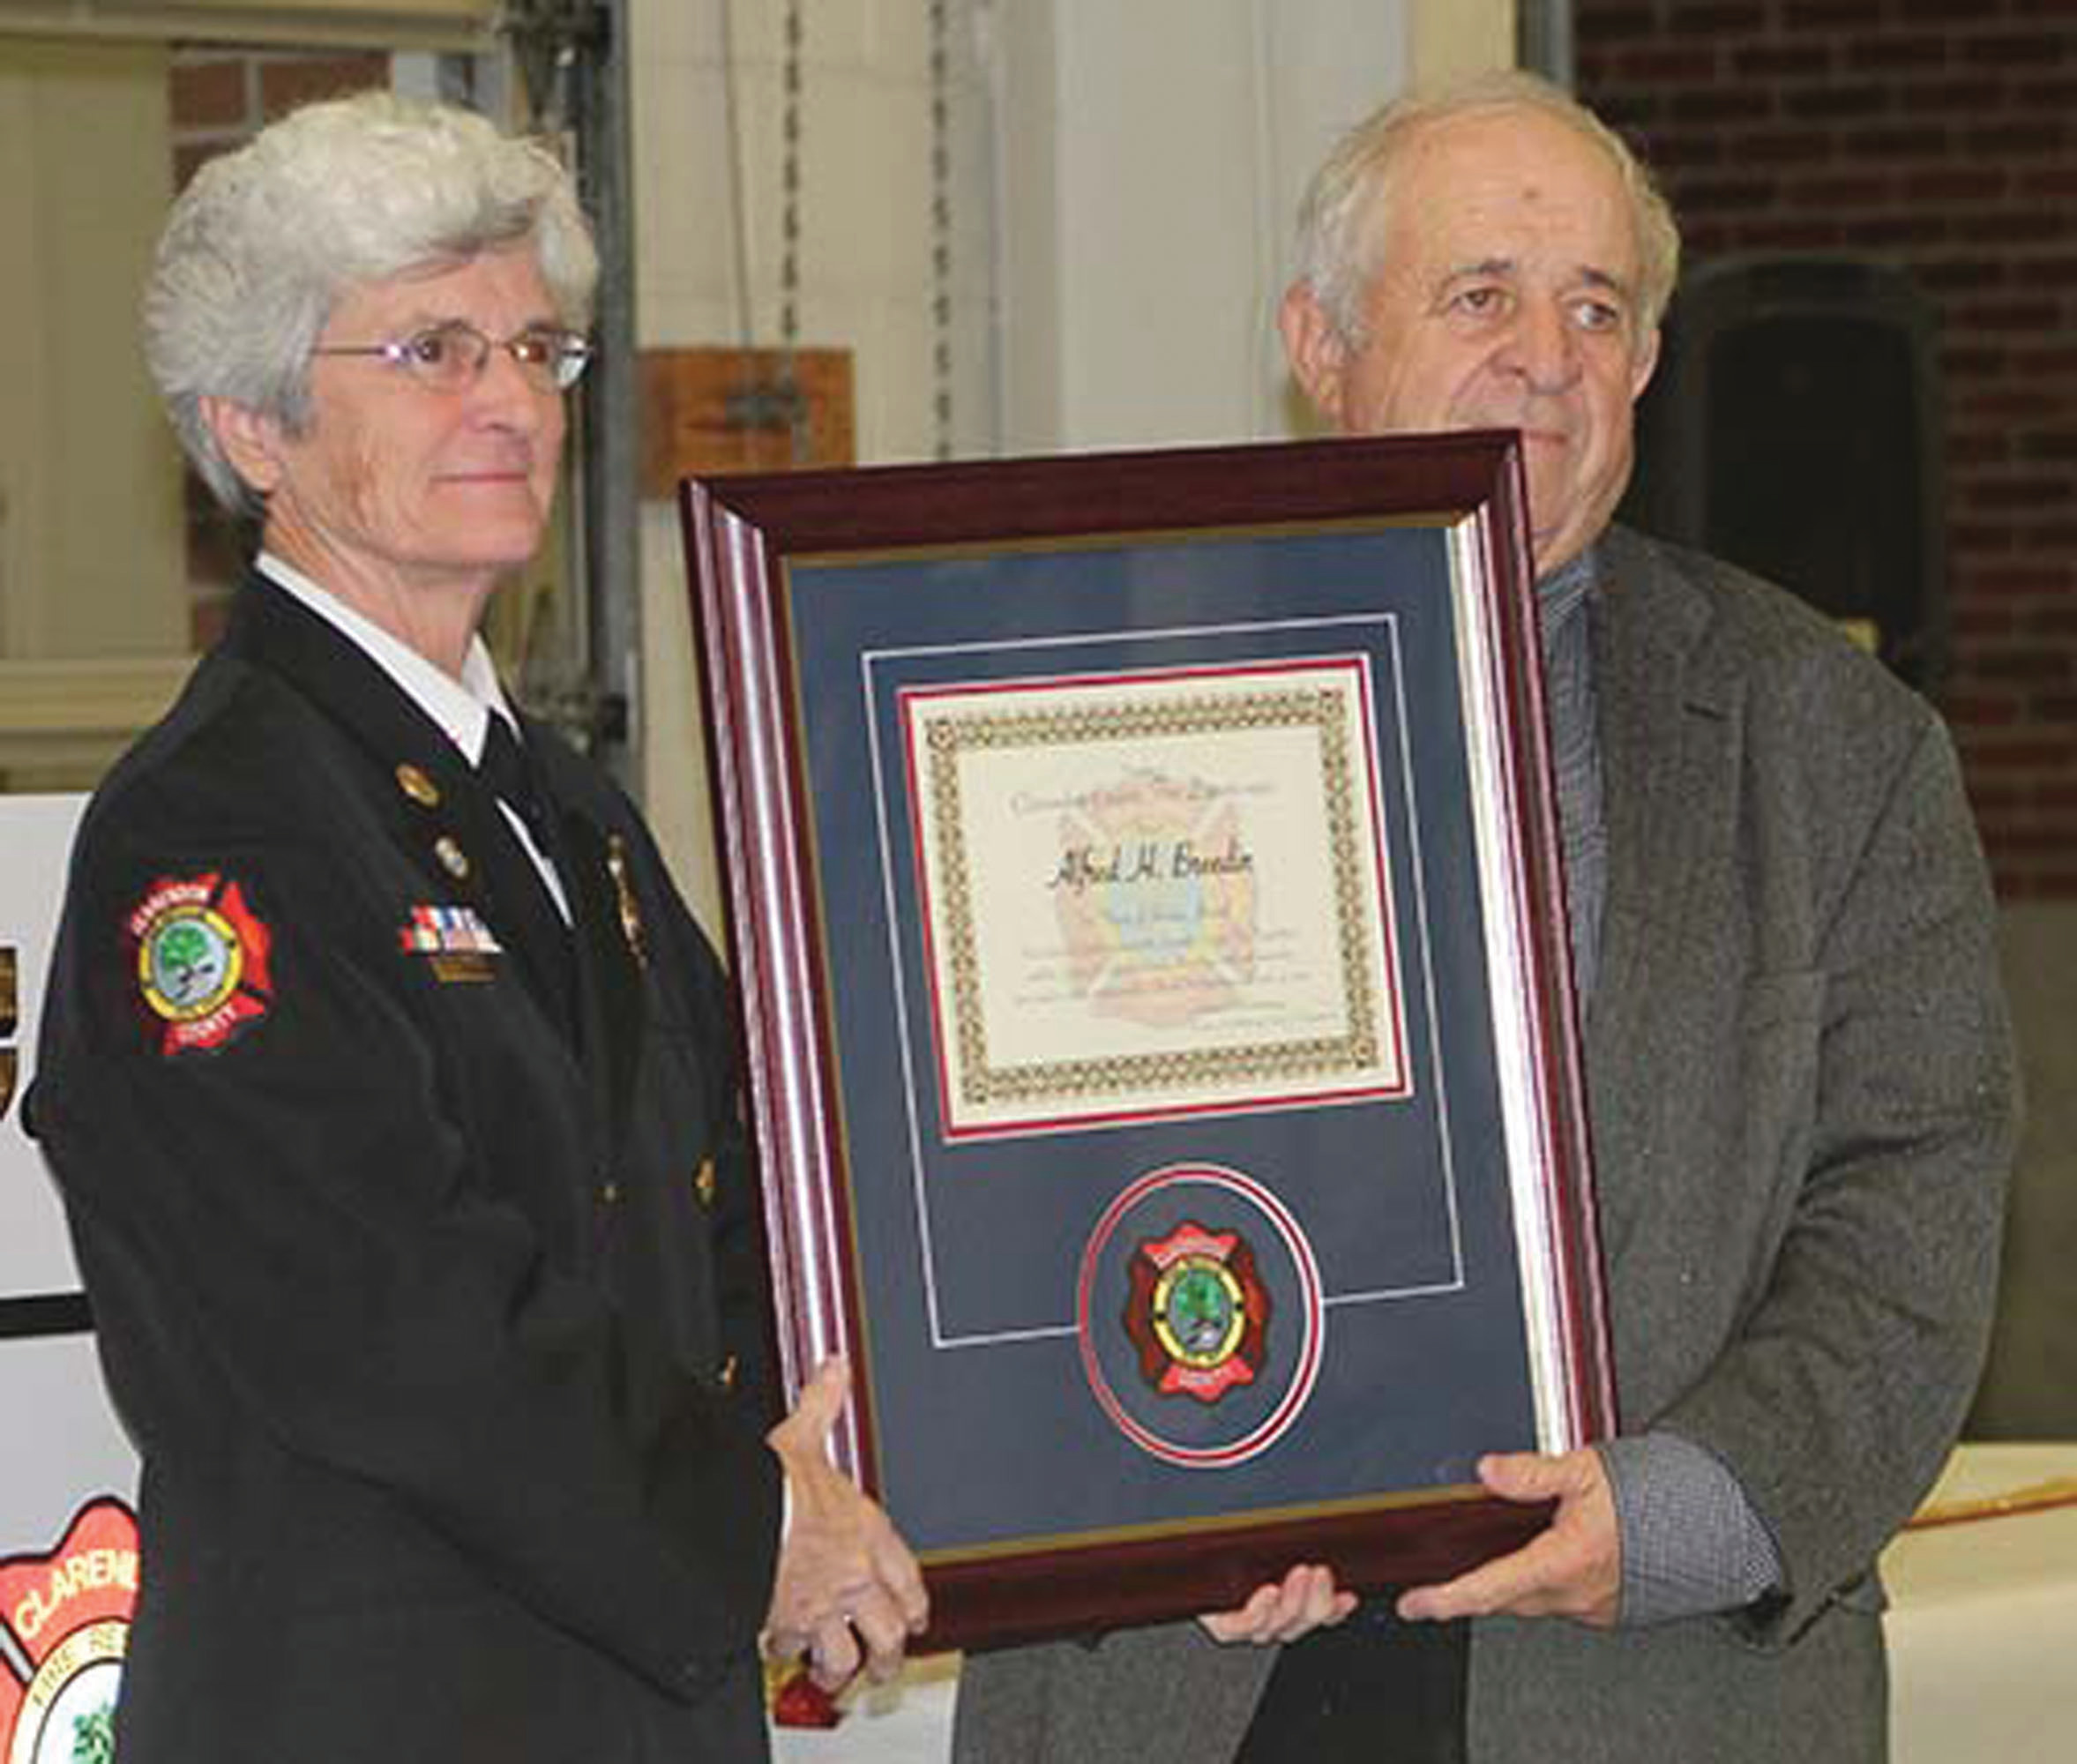 Volunteer firefighter Alfred Breedin receives a plaque from Fire Chief Frances Richbourg for recognition for his 40 years of service to Clarendon County Fire Department at the department's annual awards and Christmas dinner.